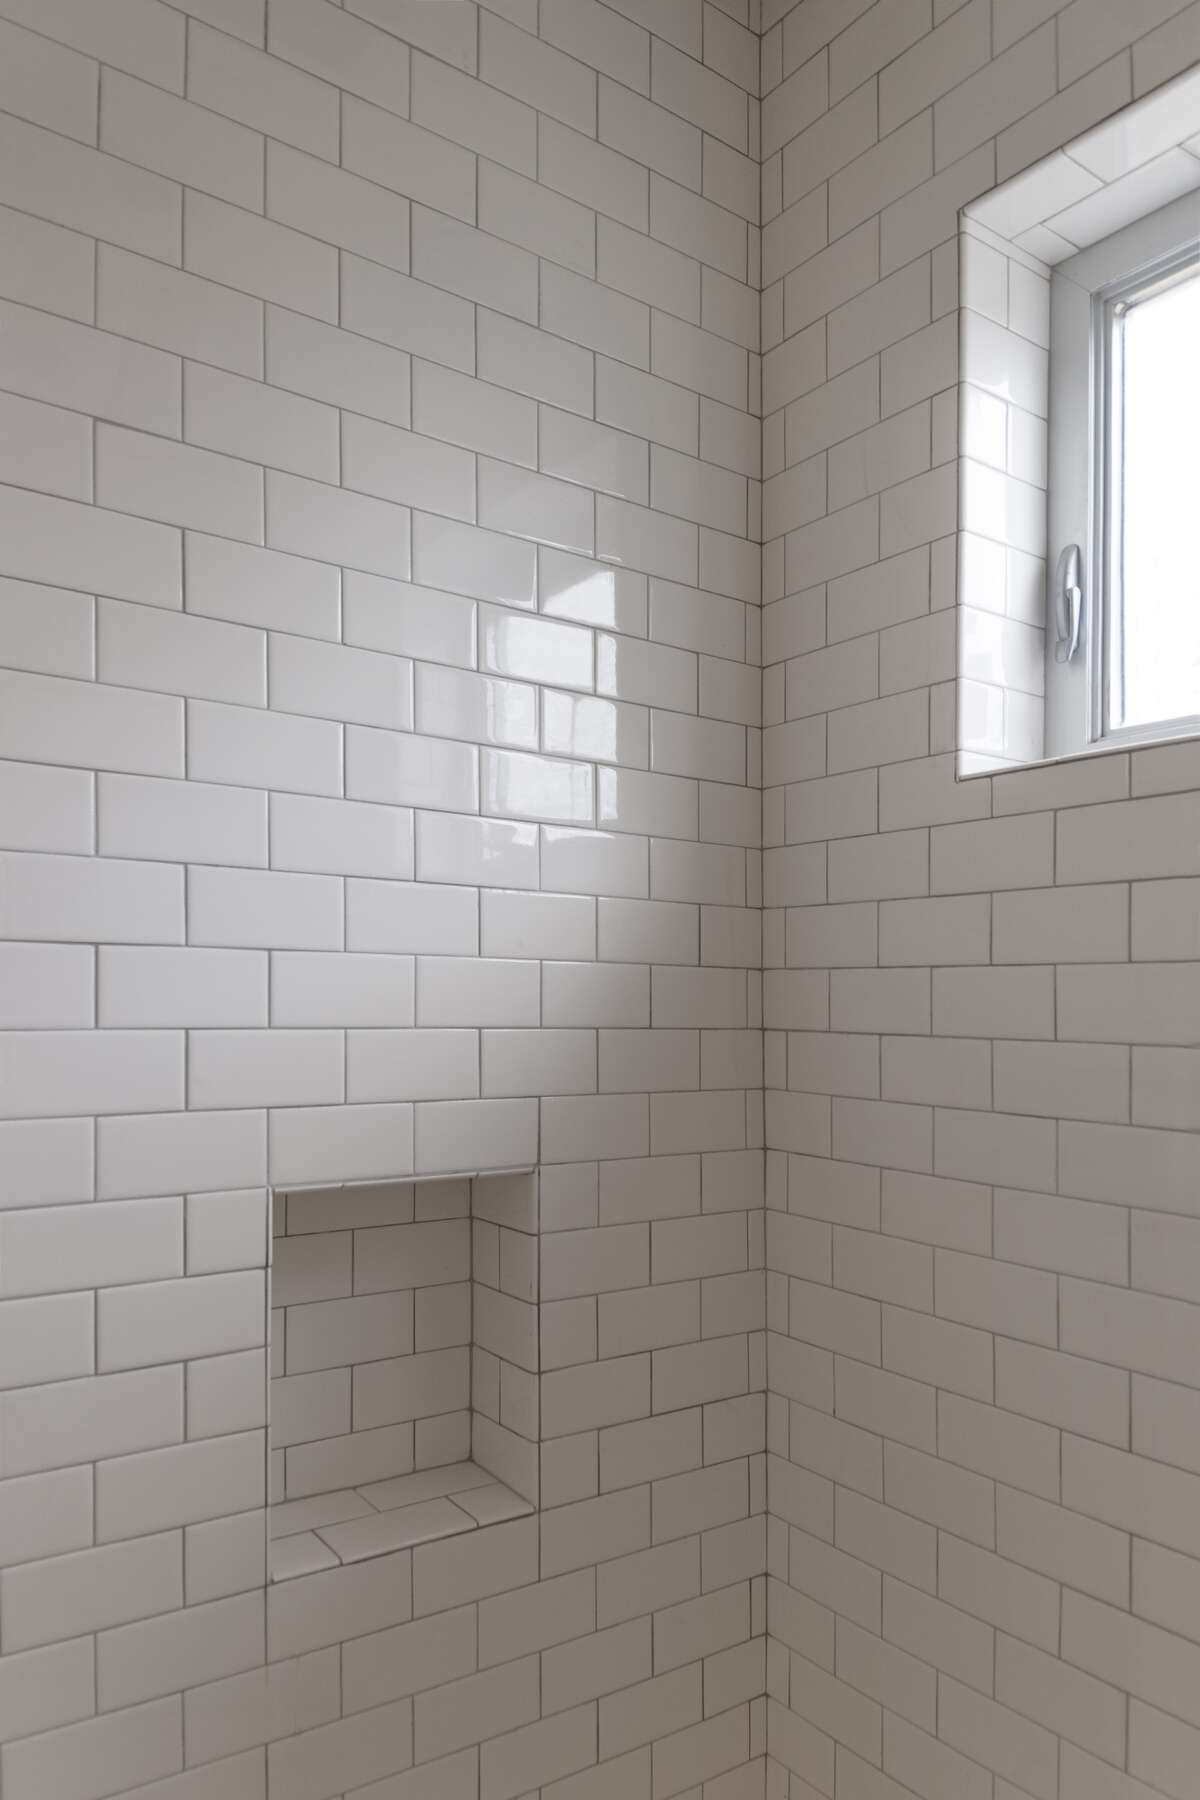 Shirkmere Lane:White subway tile covers the walls of this shower.